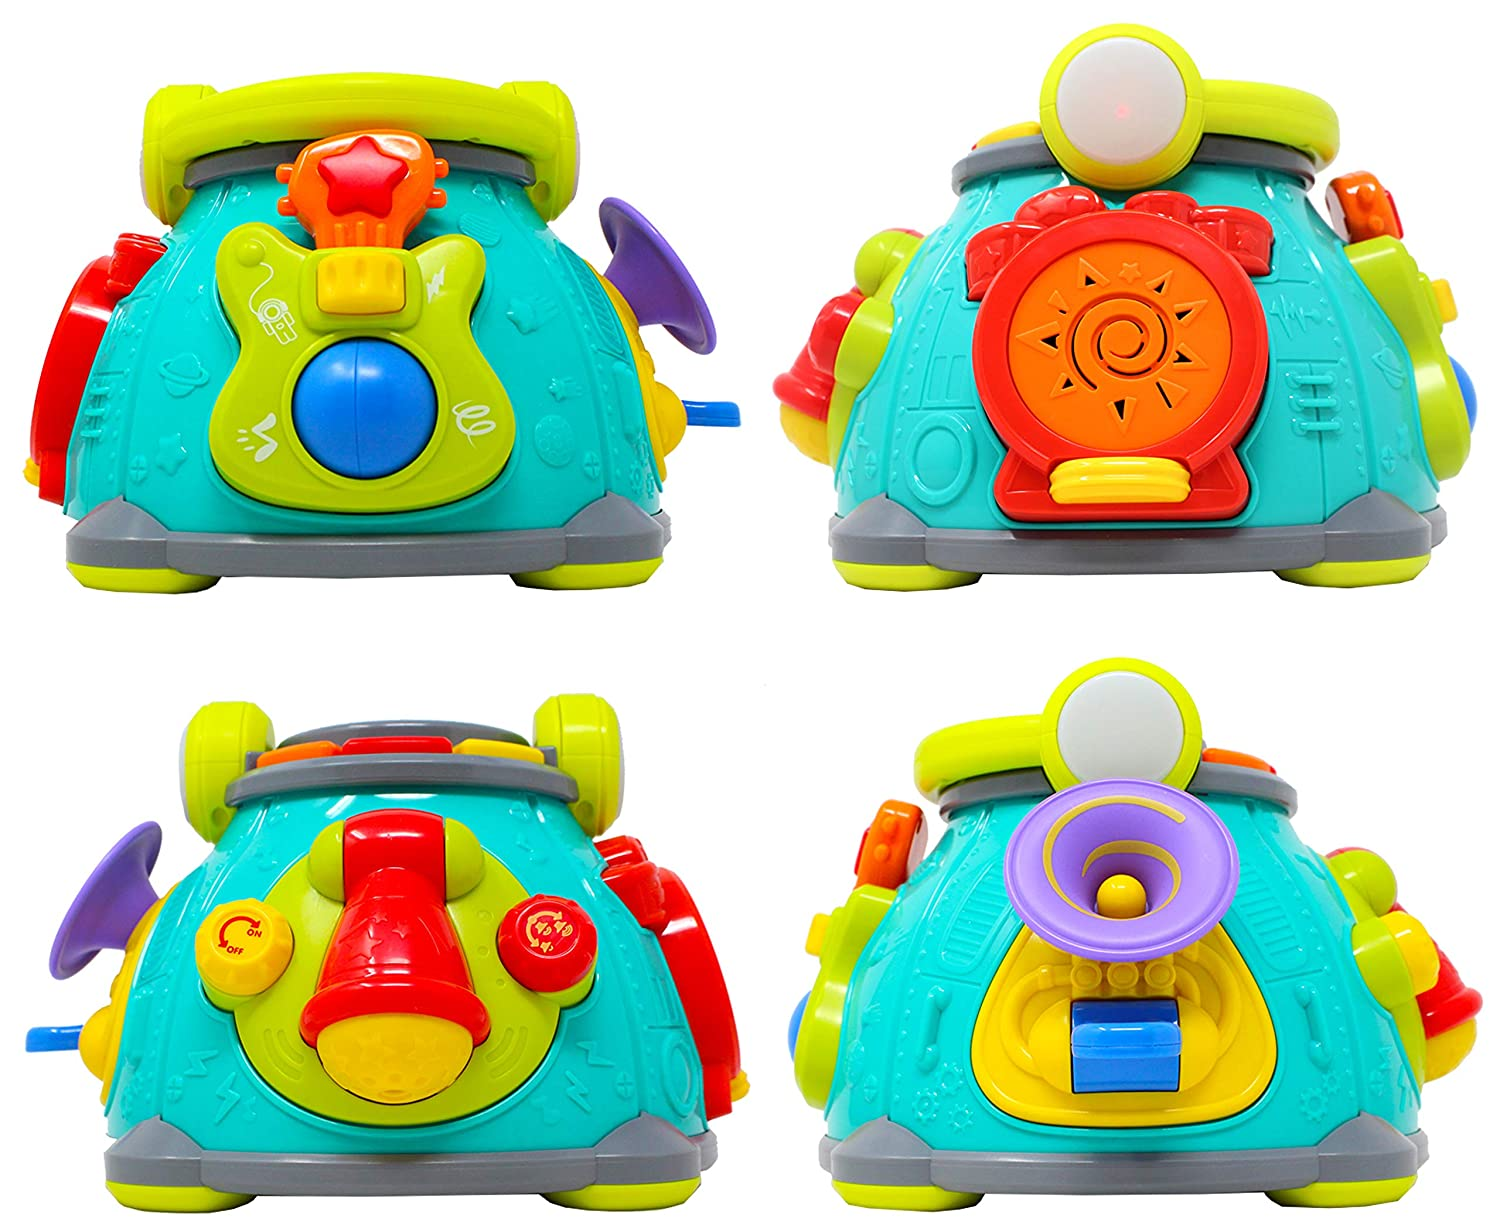 Joyin Inc JOYIN Musical Activity Cube Play Center Baby Toy with LED Light Up for Infants Toddler Interactive Learning Development Rhythm Gifts and Children Holiday Toy Gift Singing Sensory